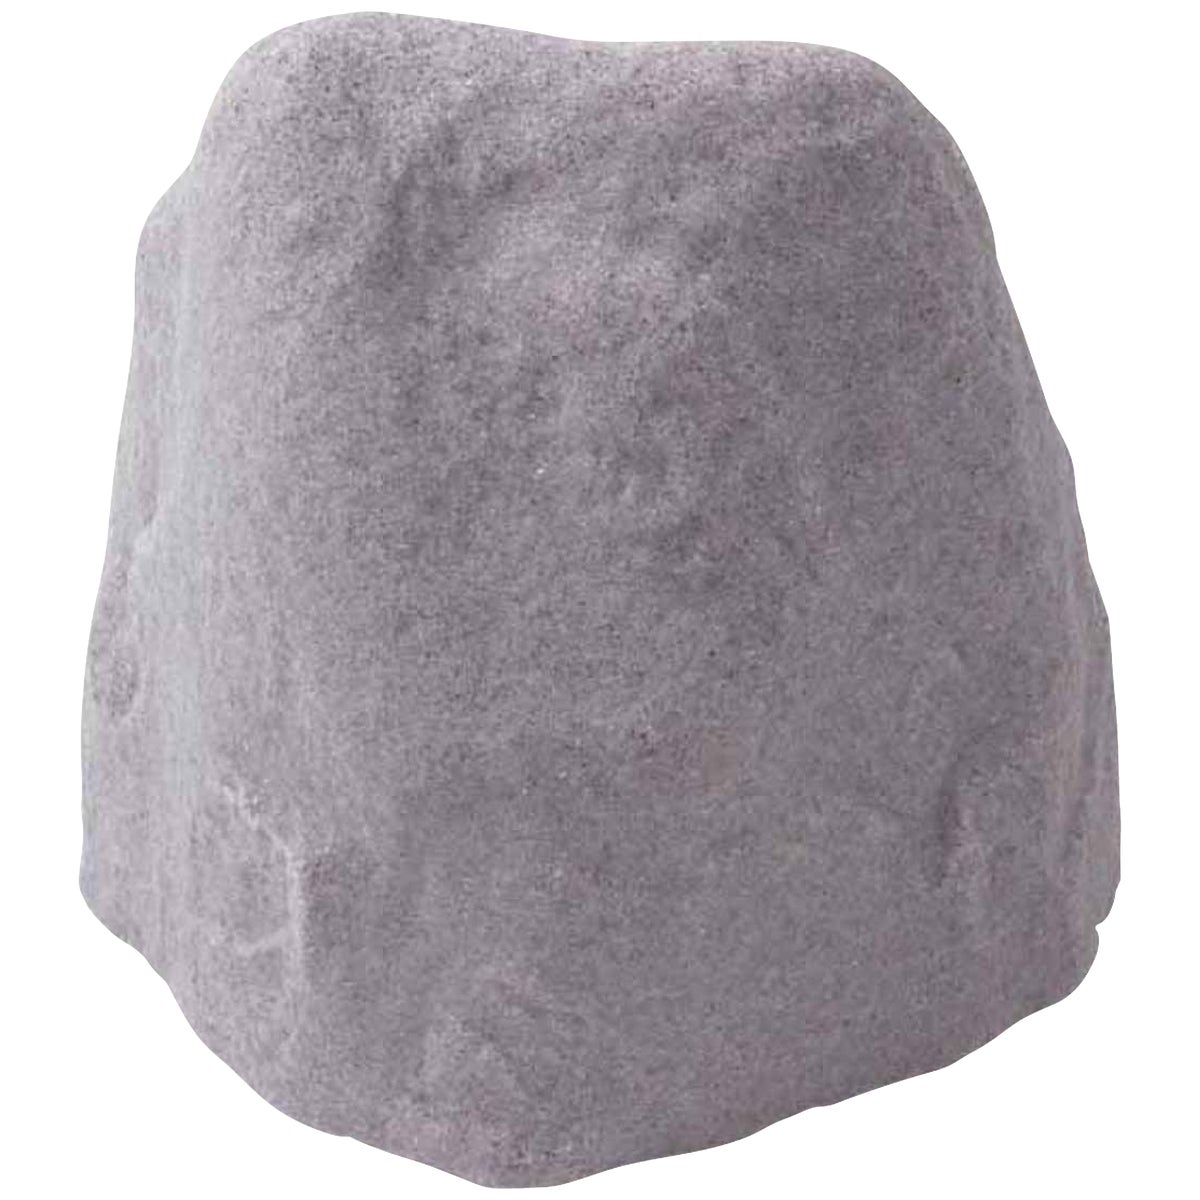 SMALL POLY ROCK